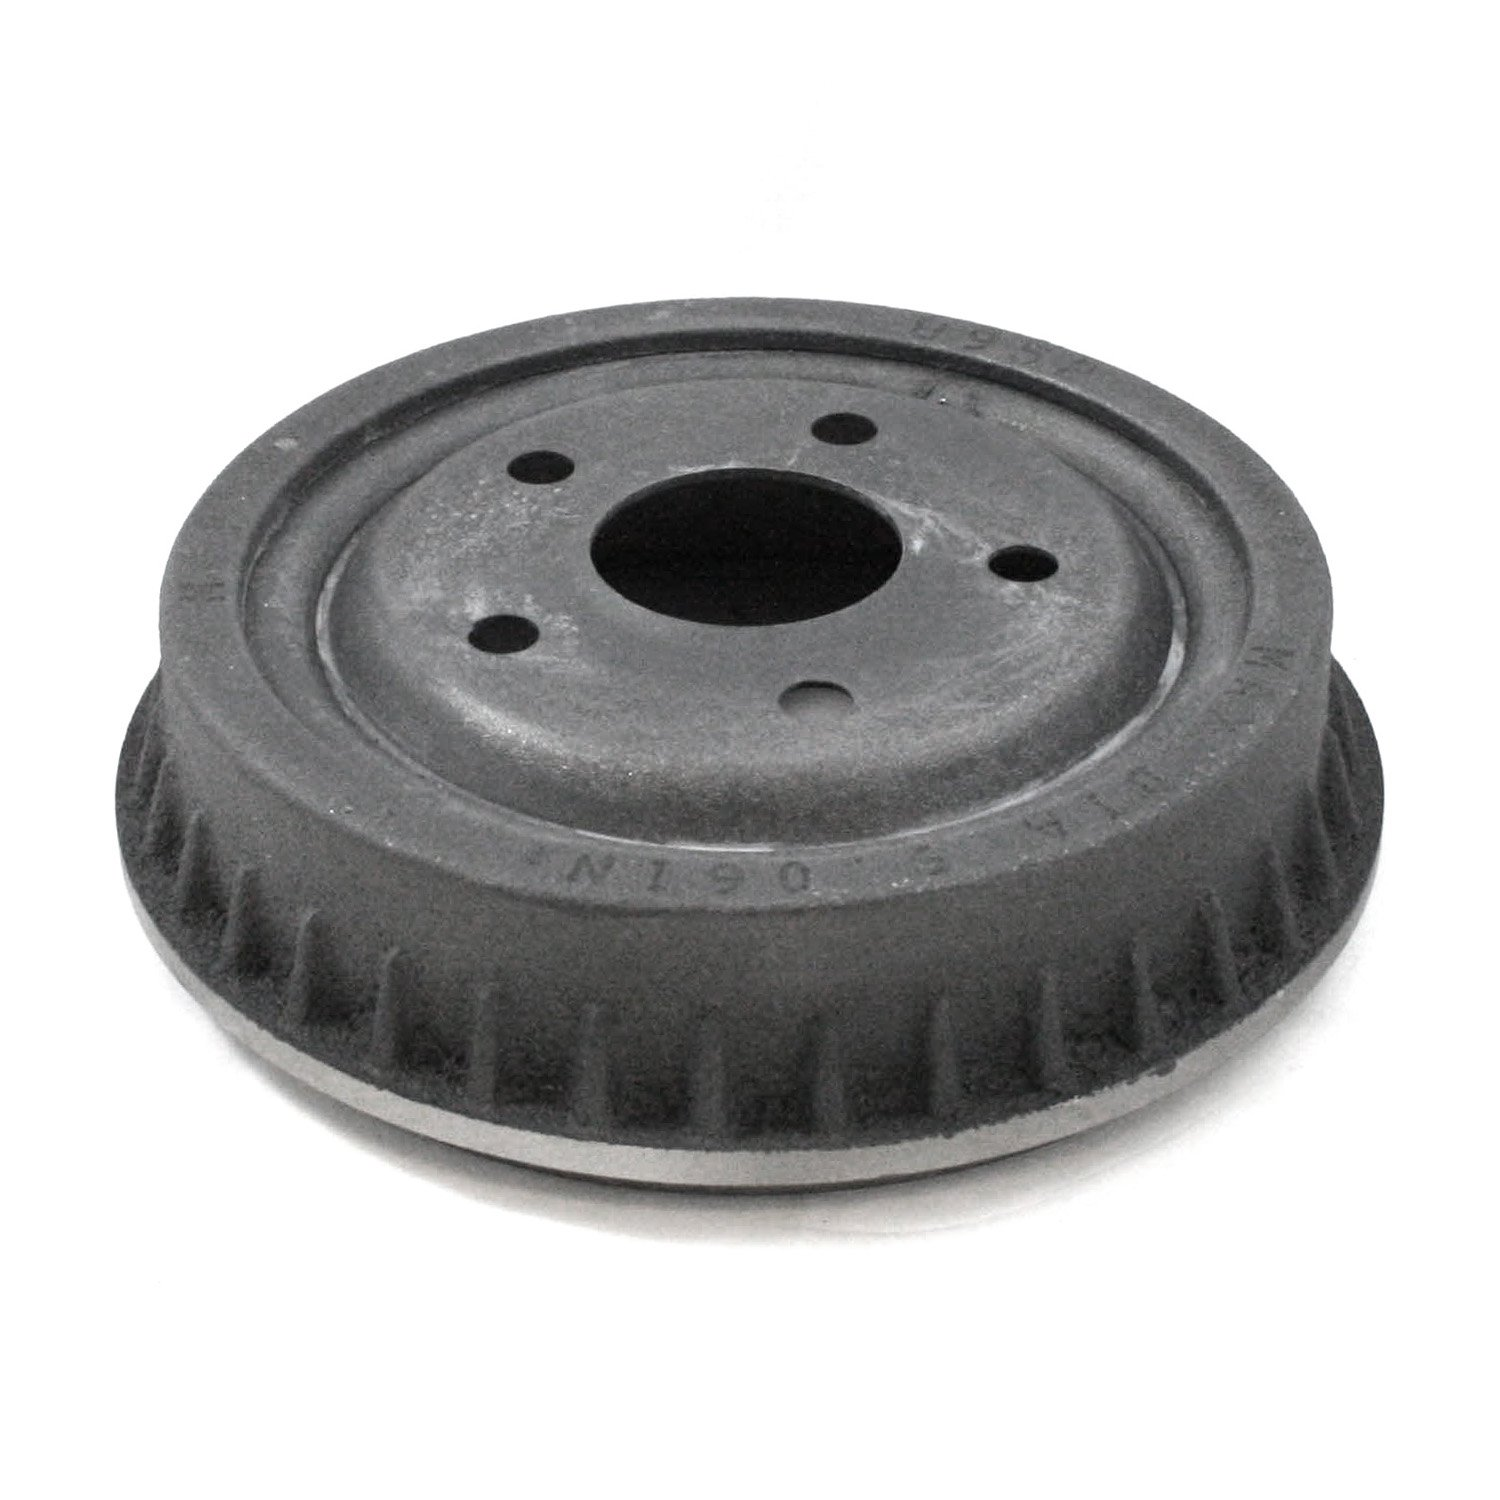 DuraGo BD8952 Rear Brake Drum